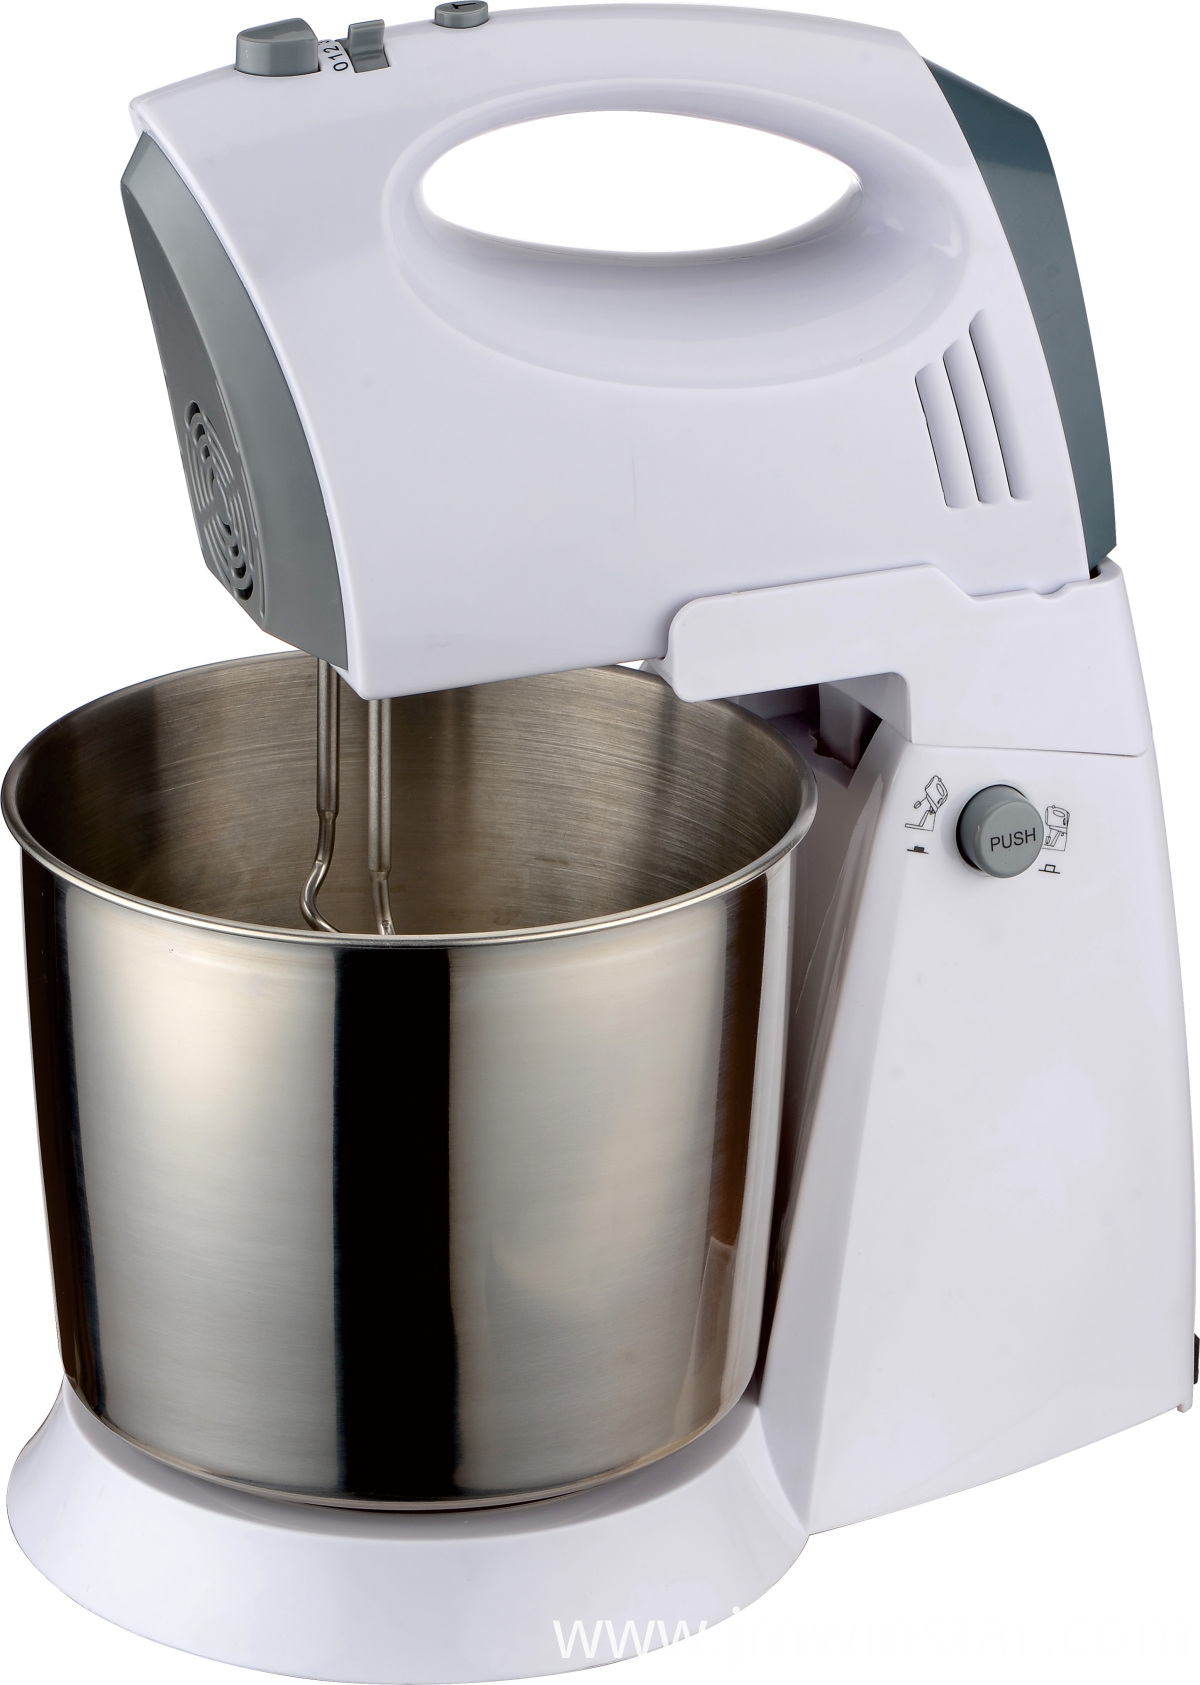 Cake and Bread Maker Mixer